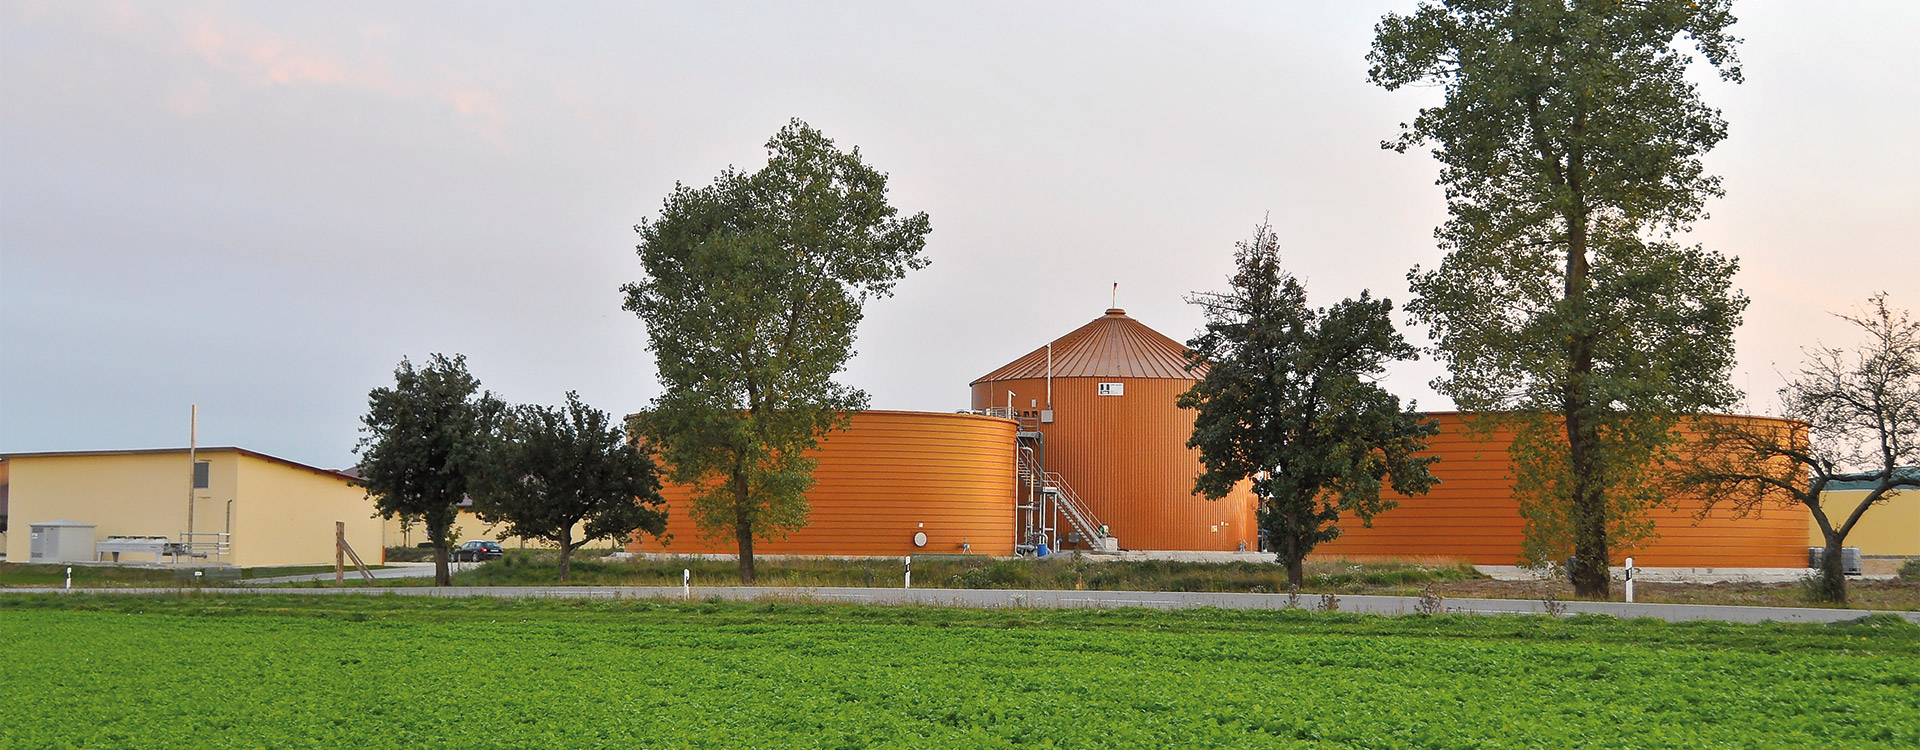 Biogas Plant Agriculture - Lipp System